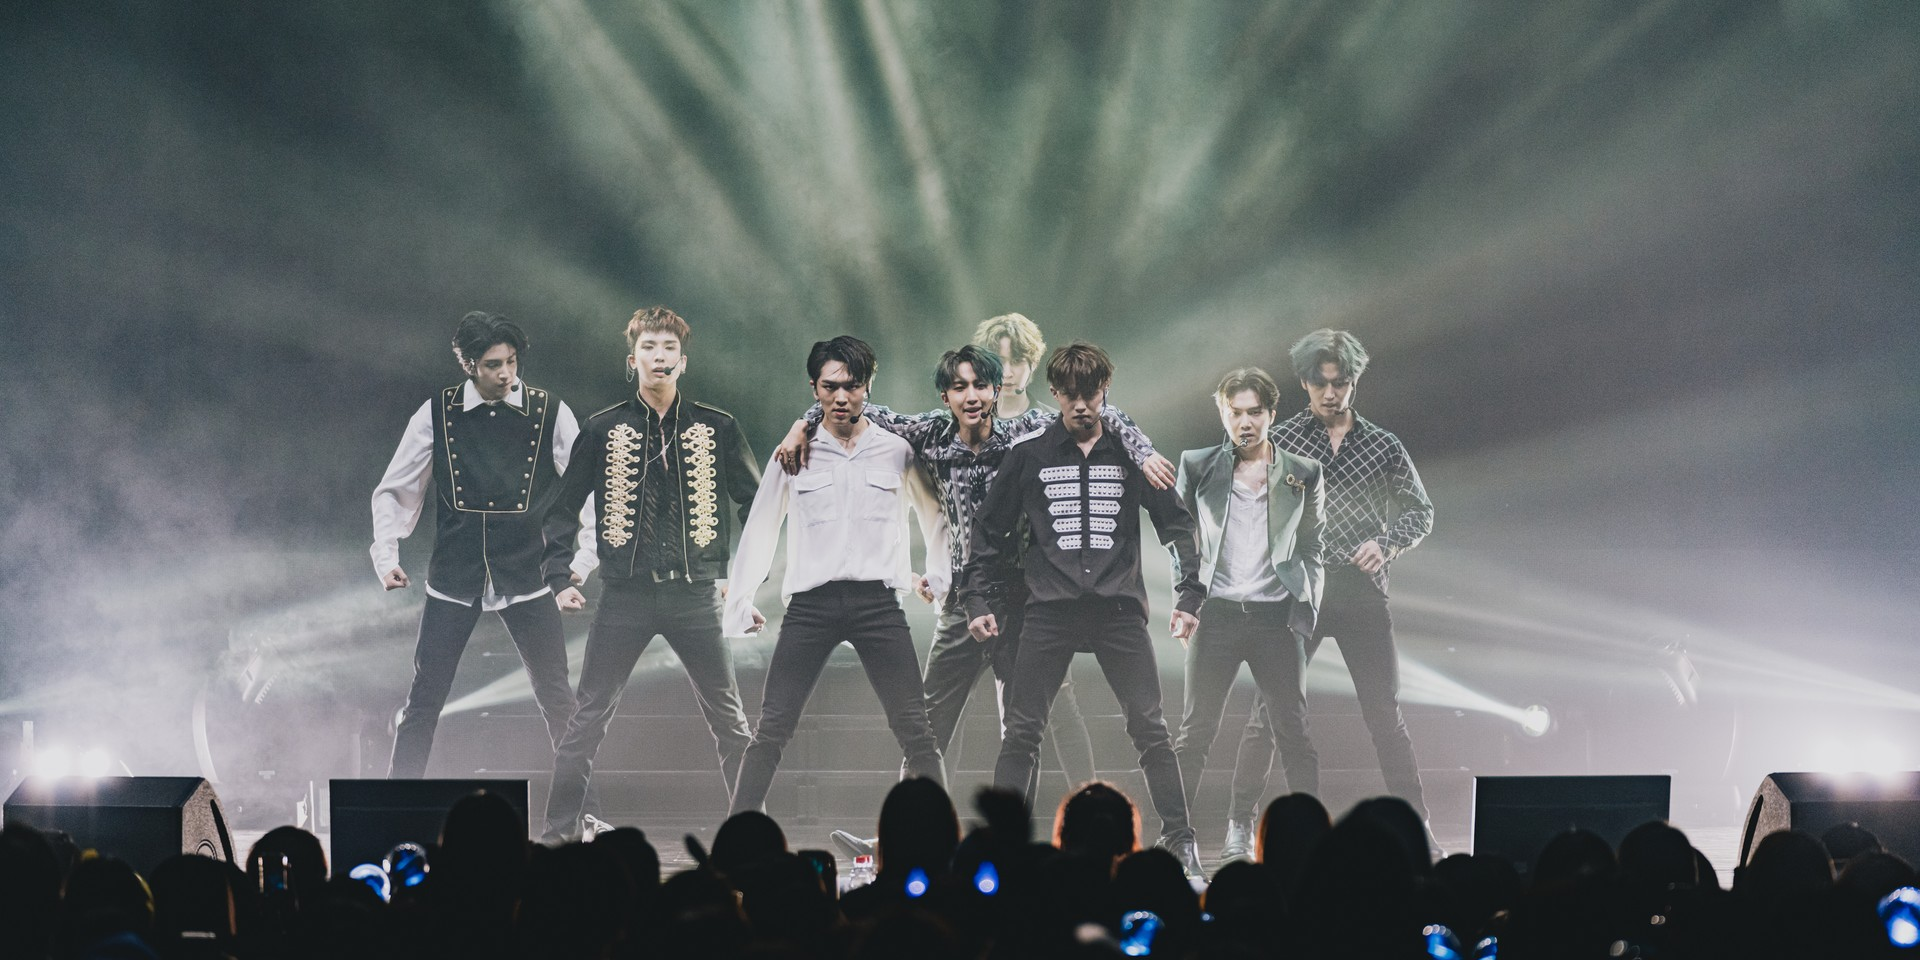 PENTAGON puts up impressive Singapore show for fans and family – gig report